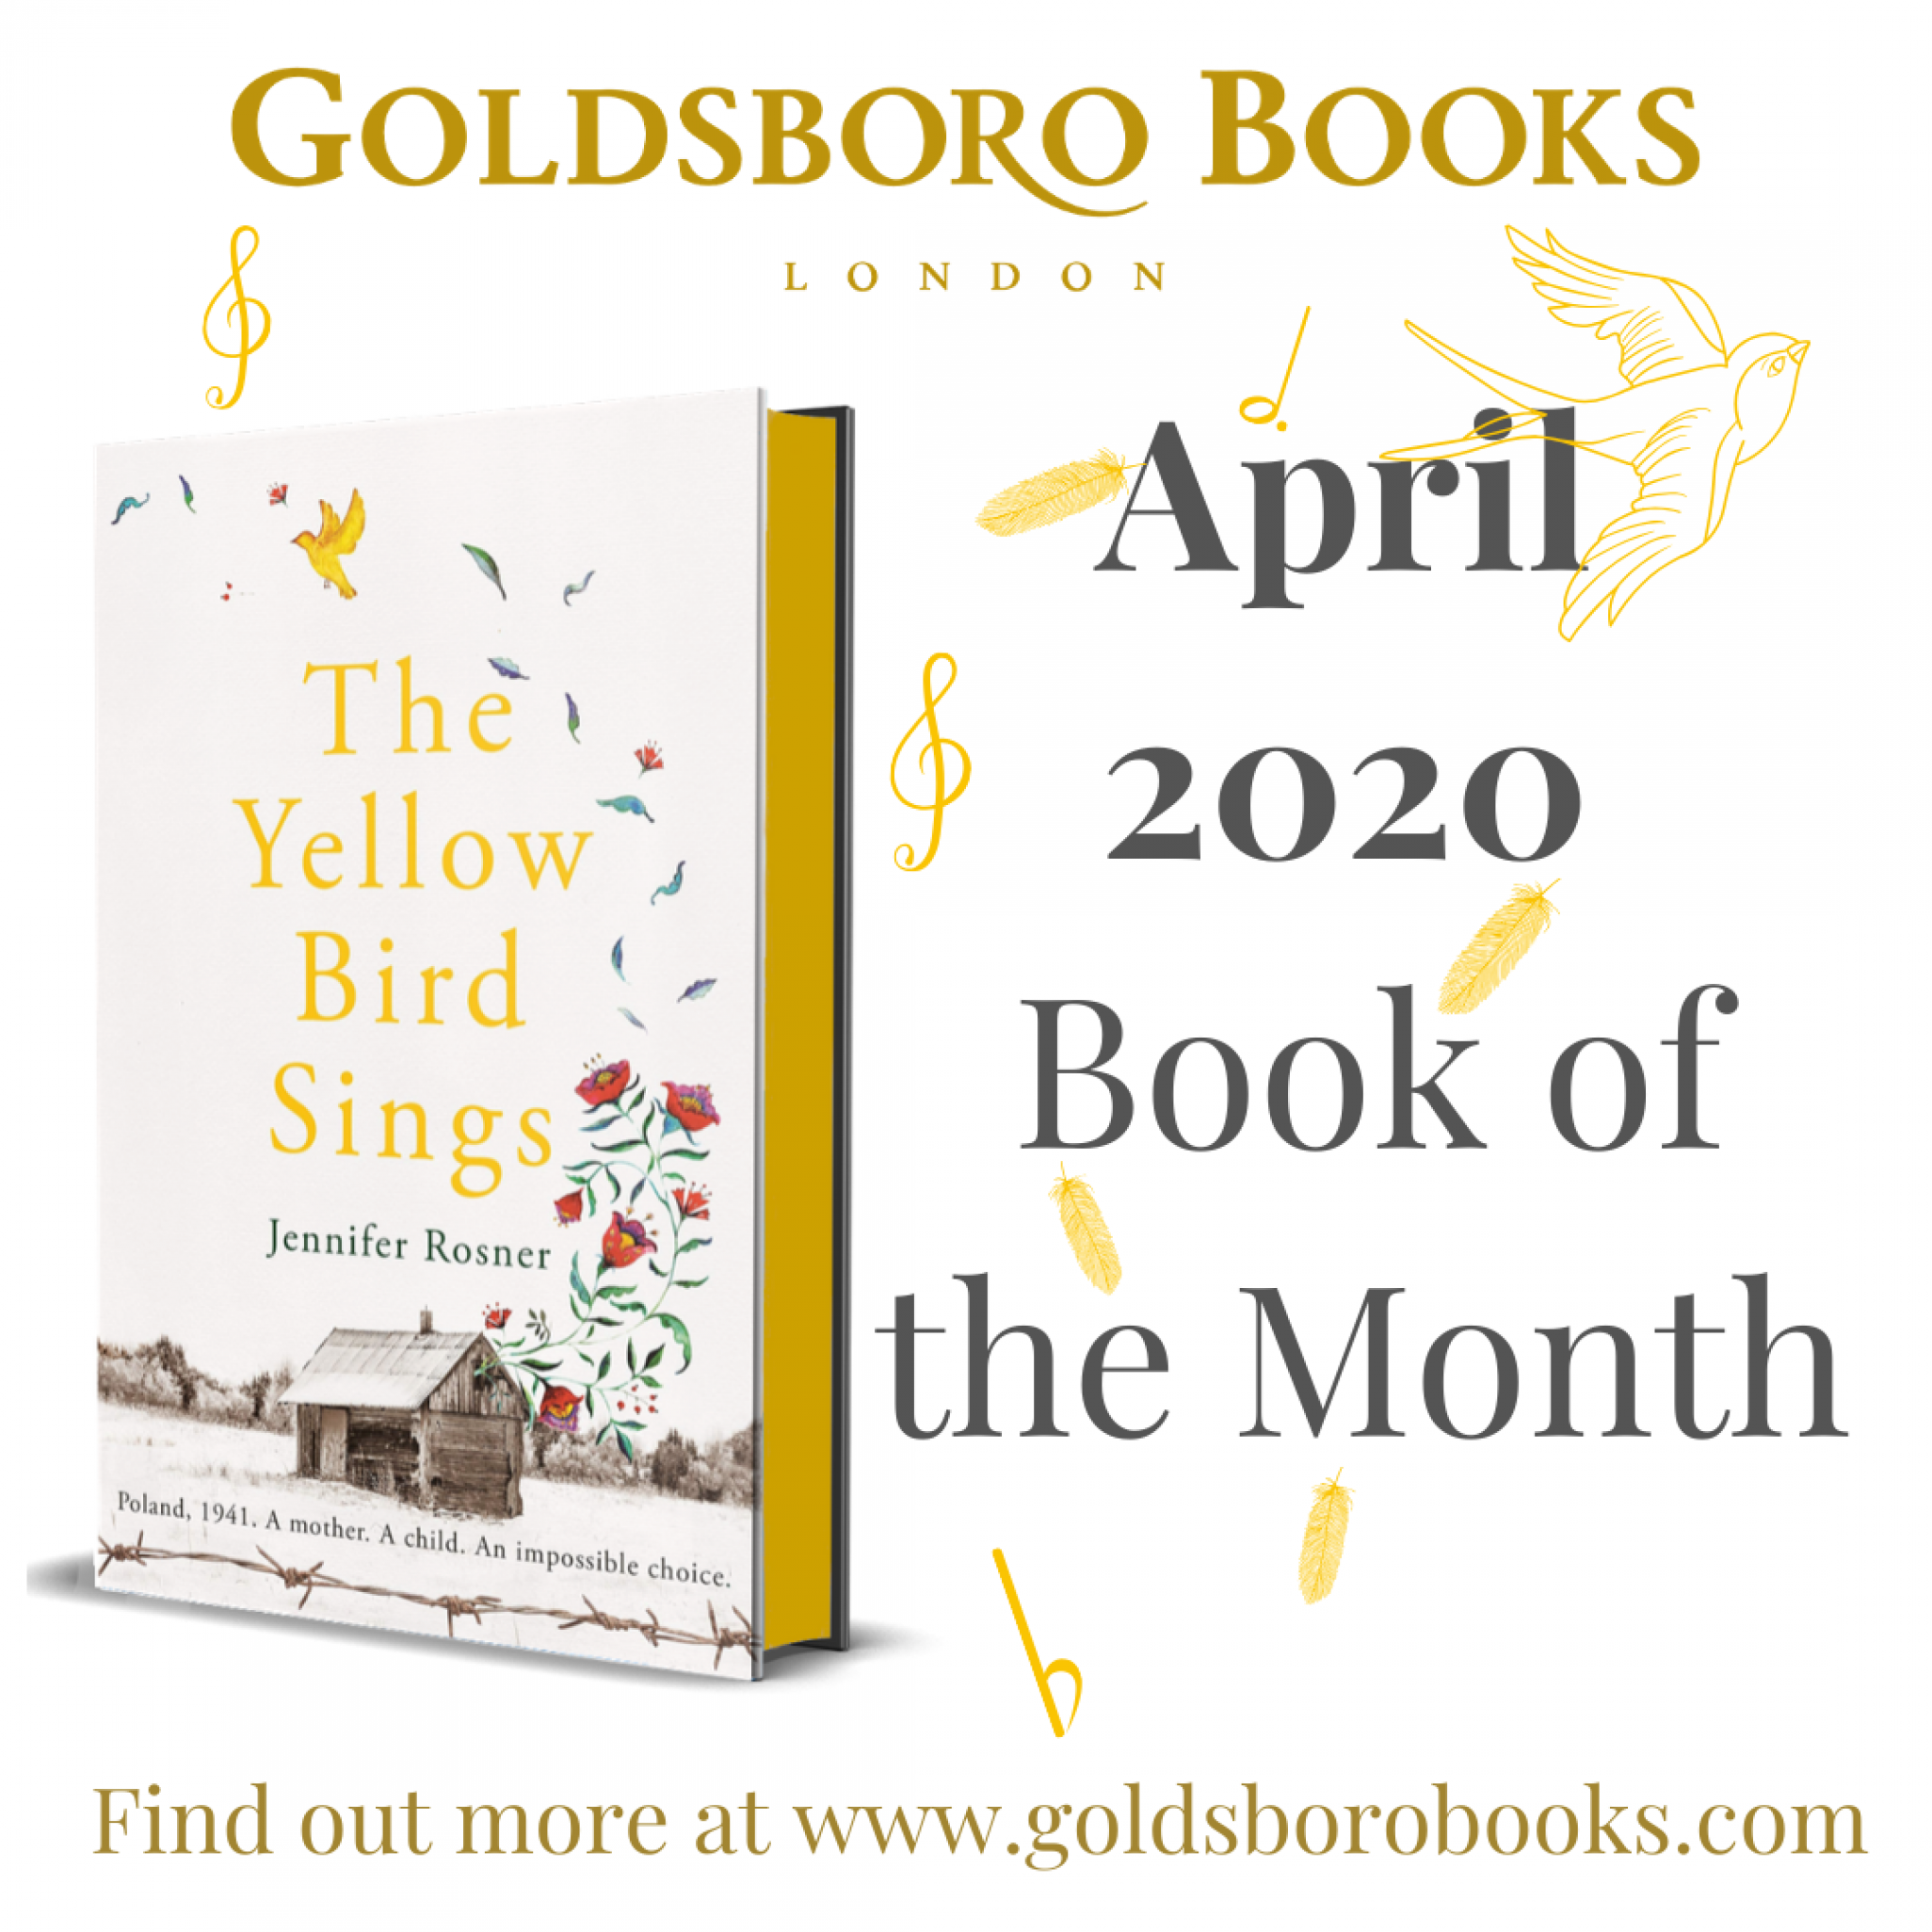 April Book of the Month 2020